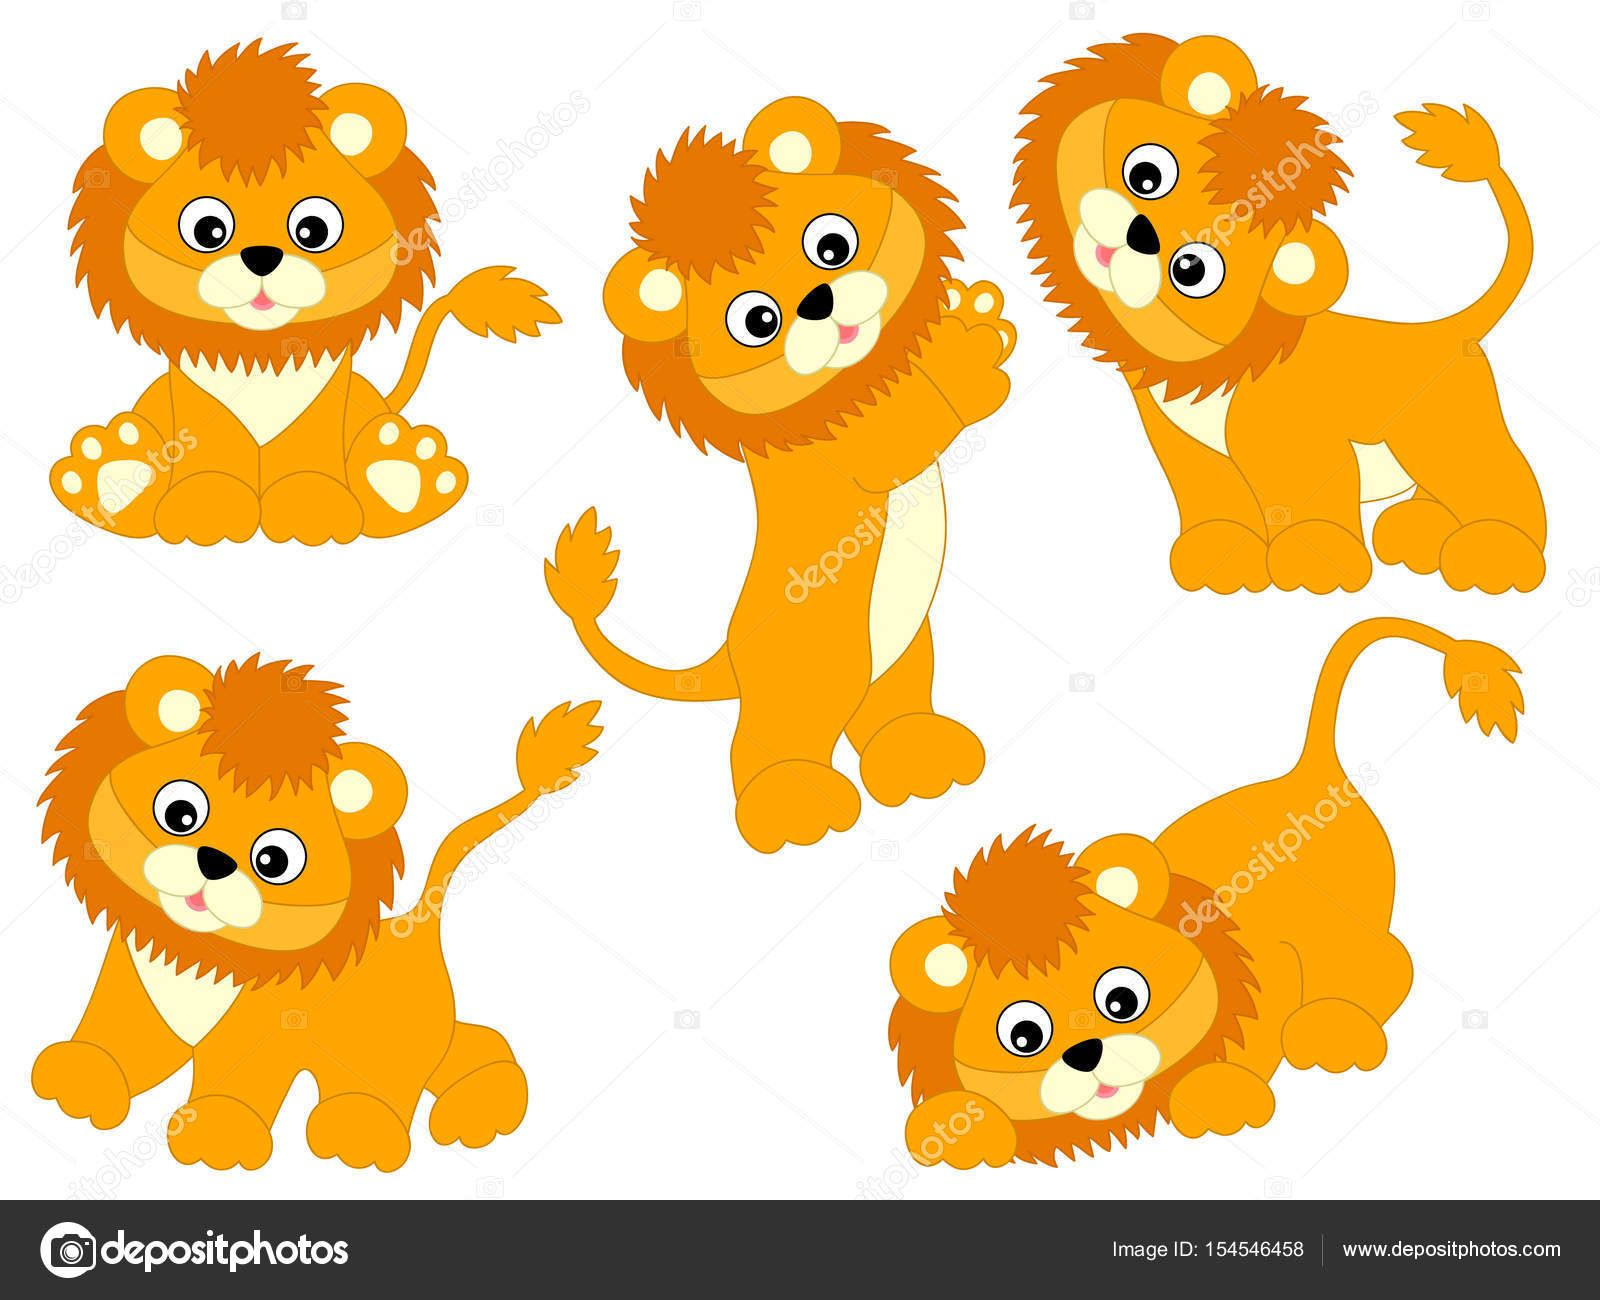 Download Vector Lions Set — Stock Illustration in 2020